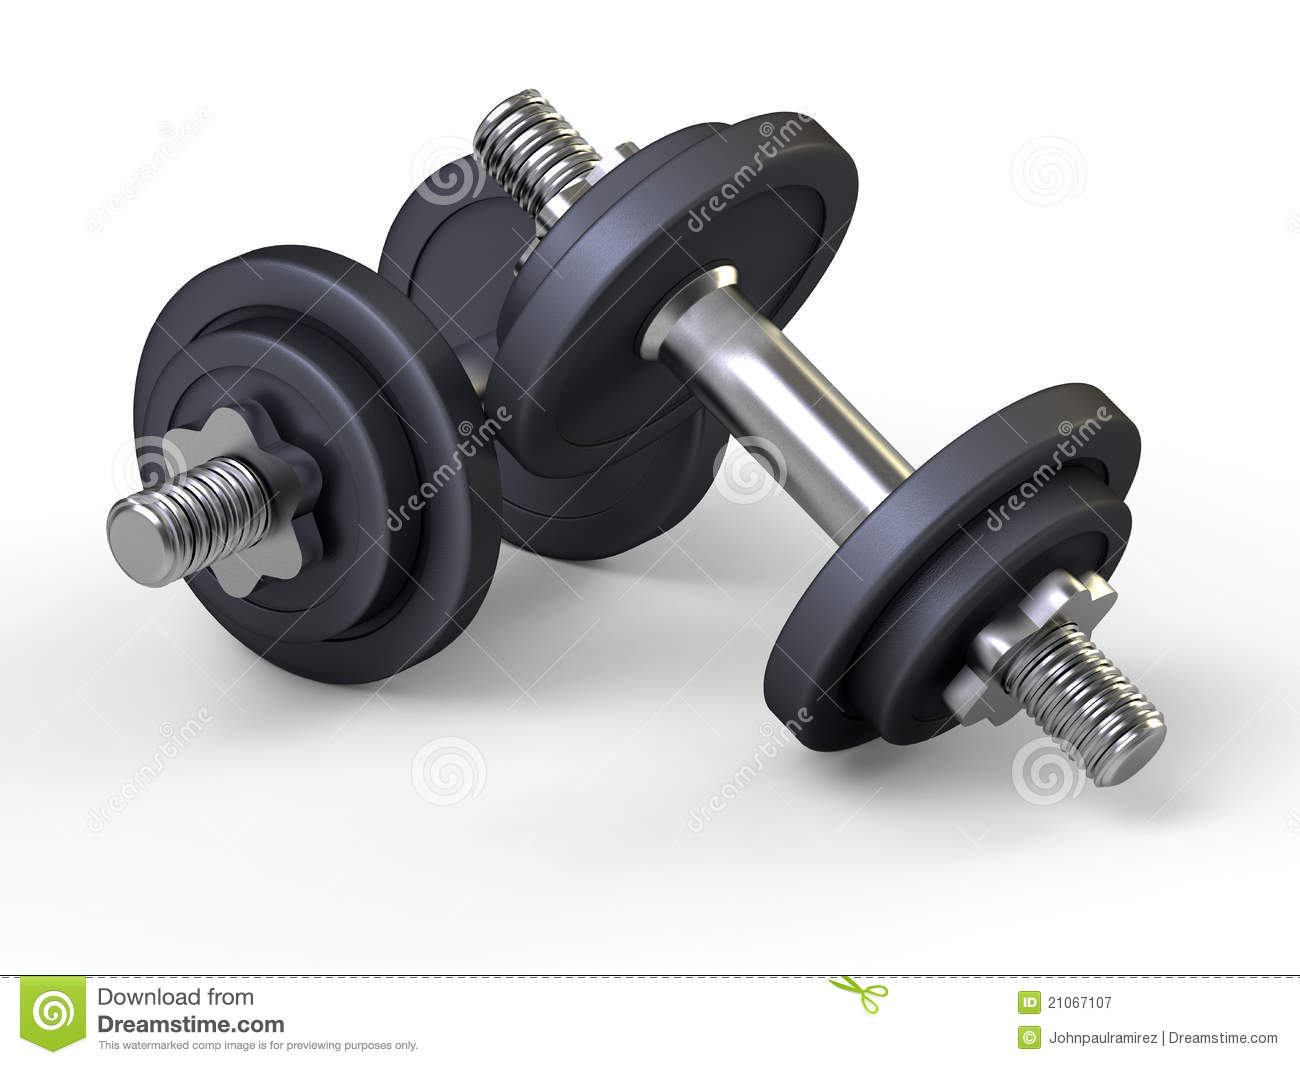 Weights dumbbells gym stock illustration